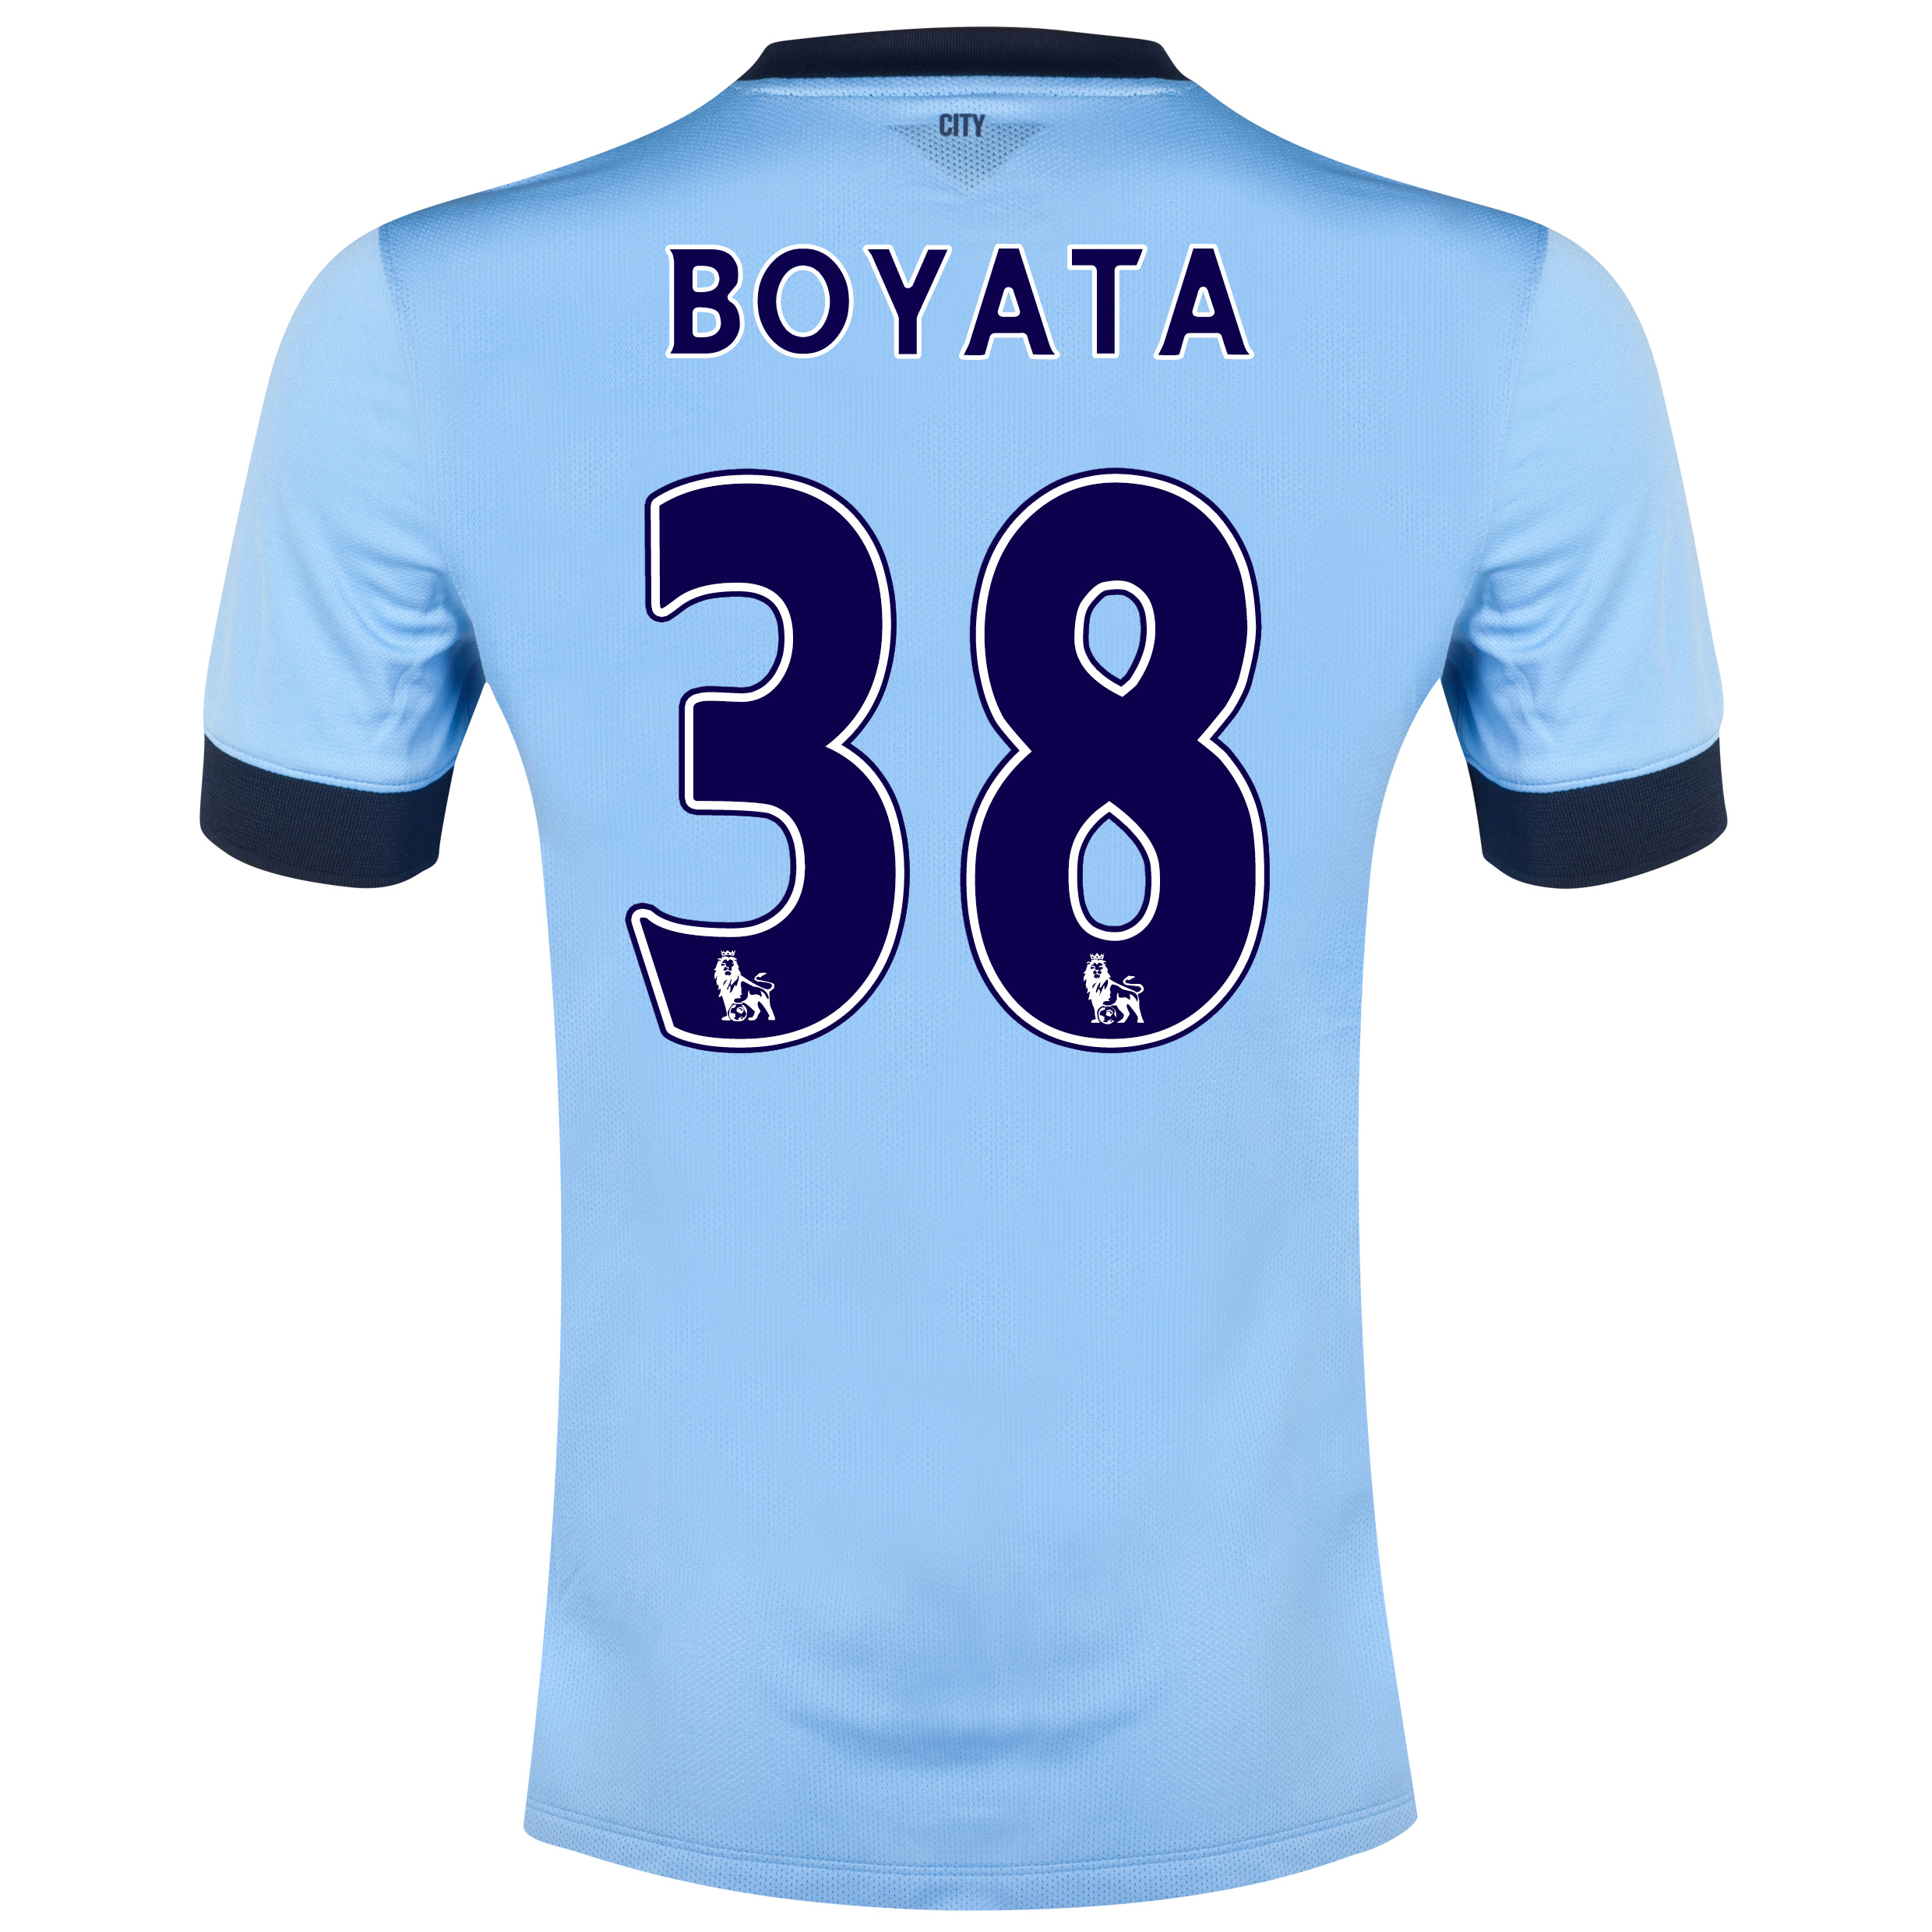 Manchester City Home Shirt 2014/15 Sky Blue with Boyata 38 printing